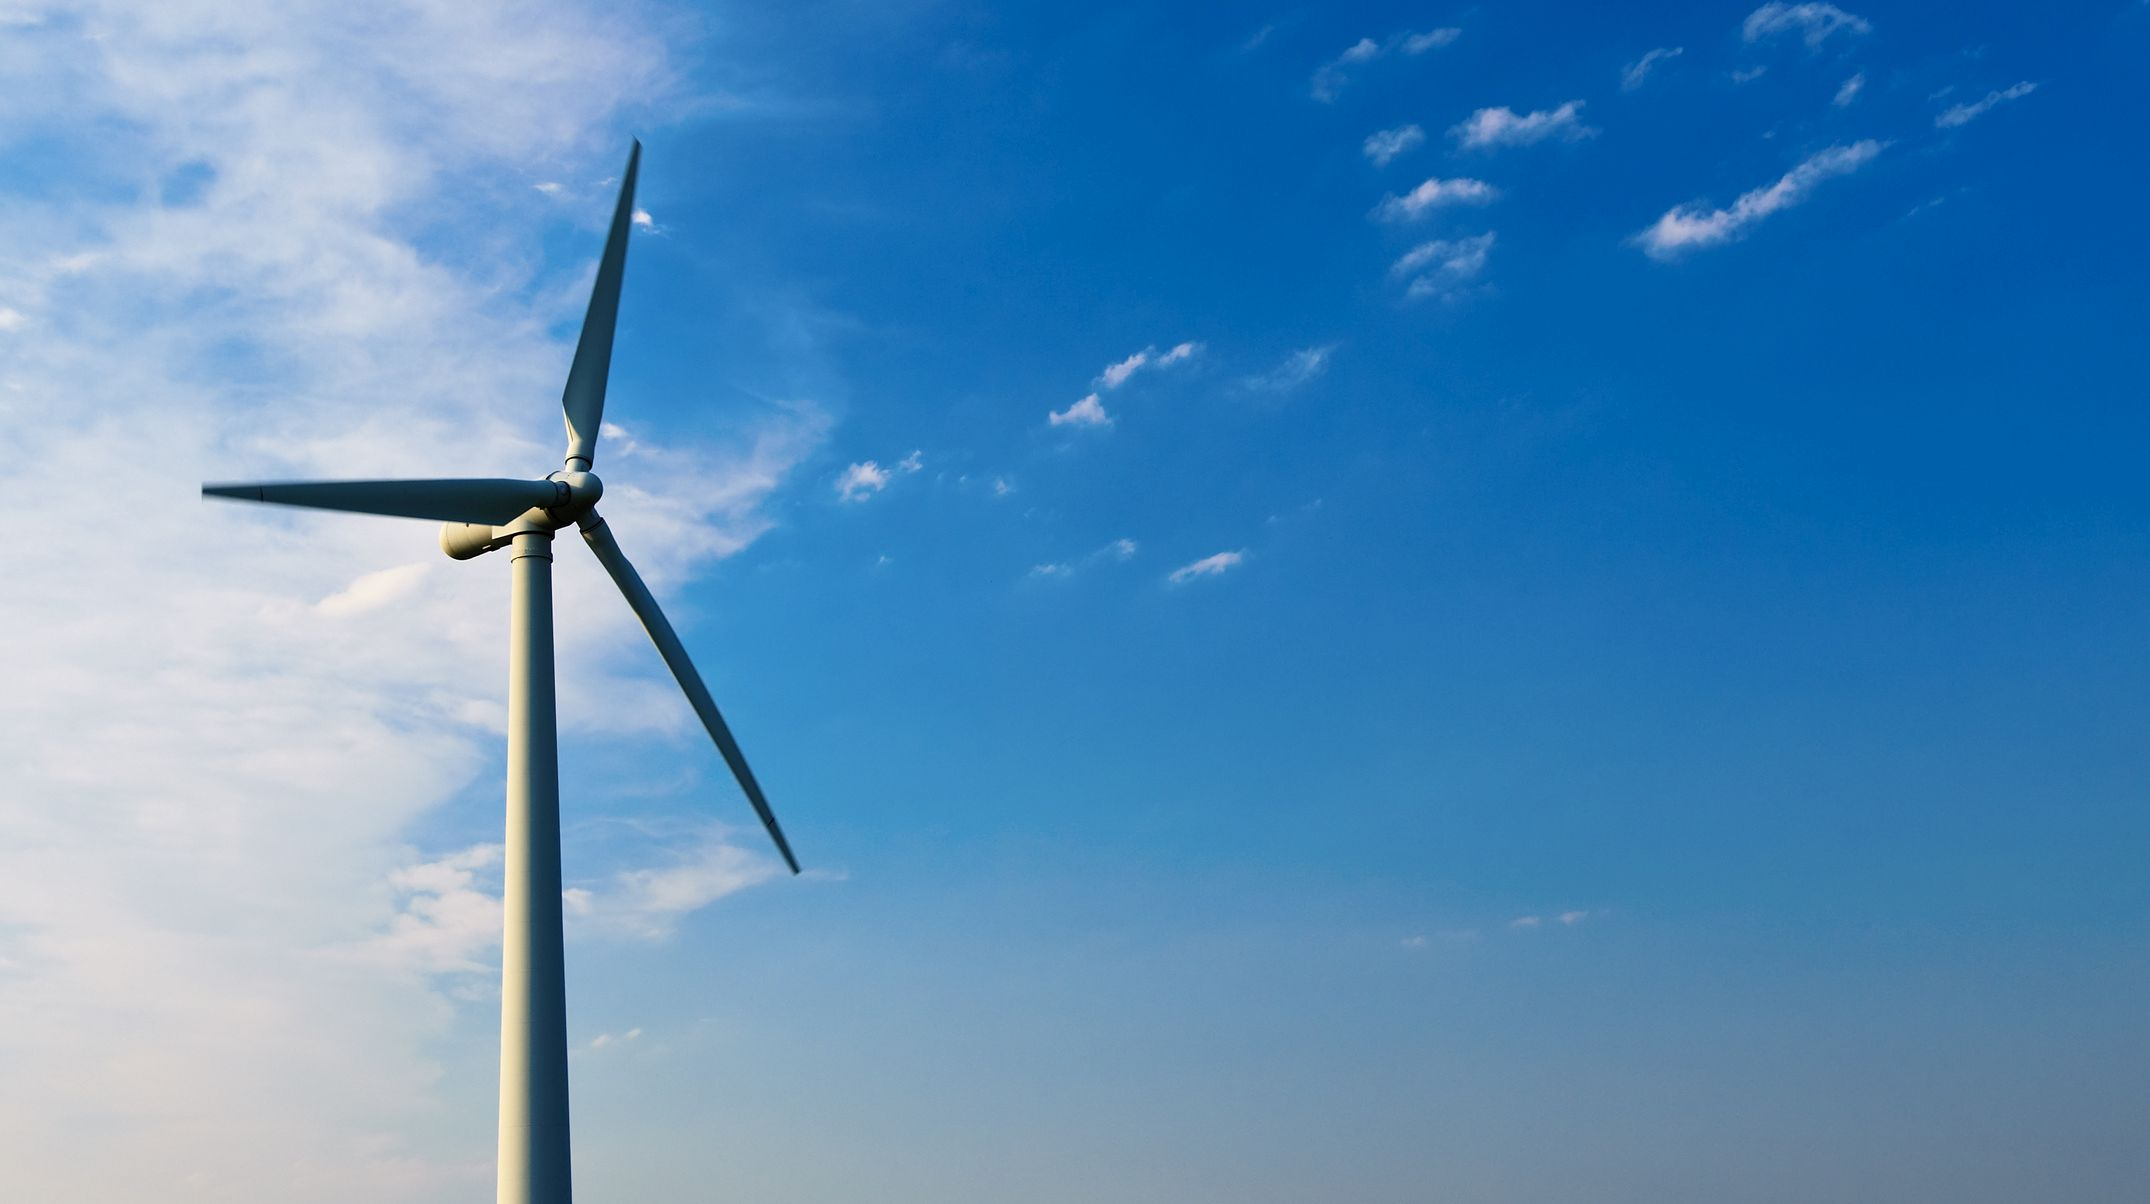 Stagnating wind expansion: climate target at risk despite coal phase-out